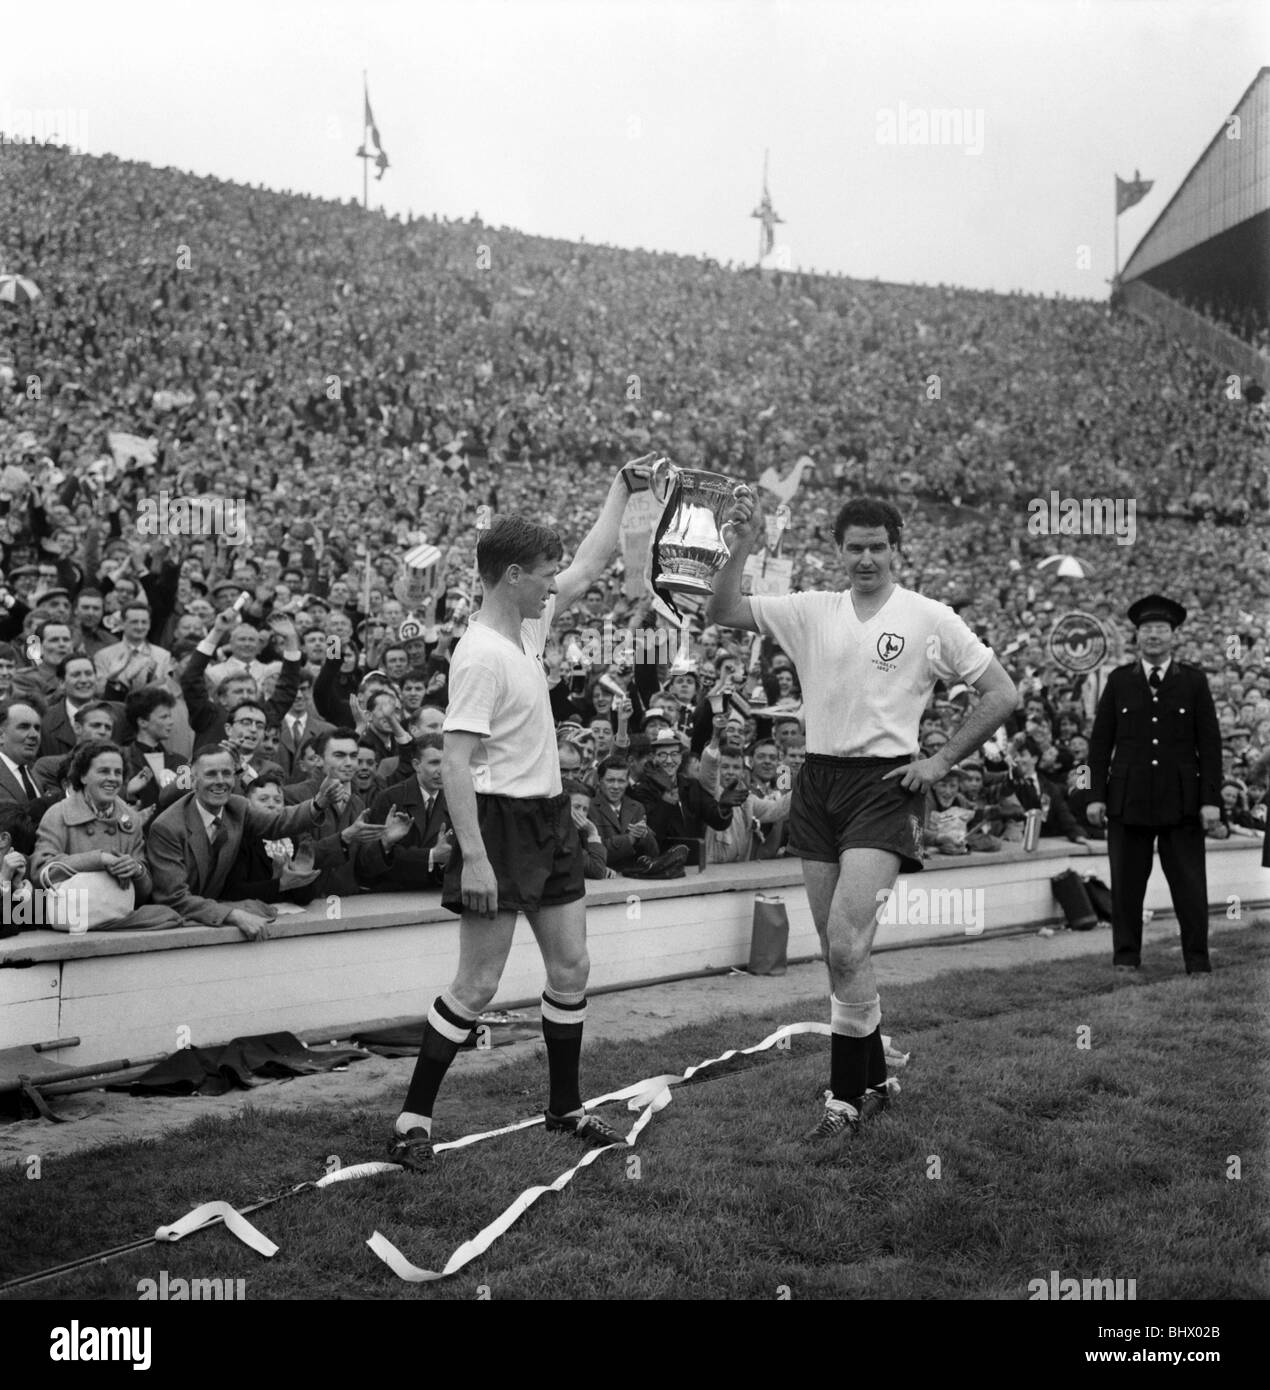 FA Cup final at Wembley Stadium. Tottenham Hotspur 3 v. Burnley 1. Maurice Norman of Spurs (right) holds up the - Stock Image